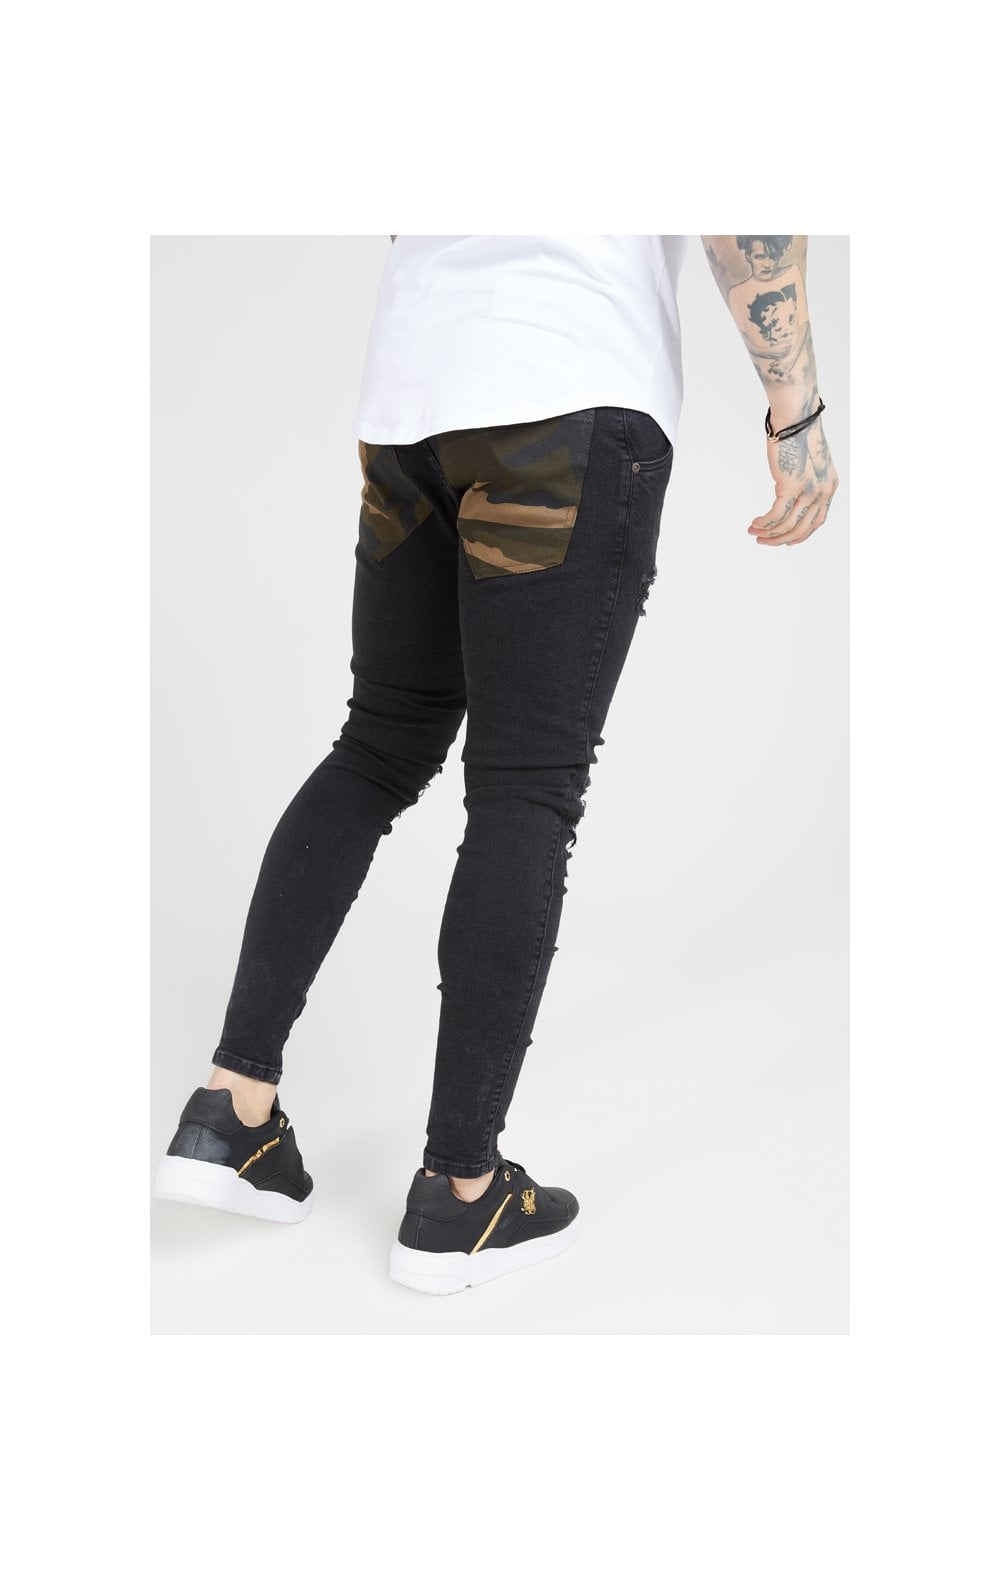 Load image into Gallery viewer, SikSilk Burst Knee Low Rise Denims - Washed Black & Camo (3)